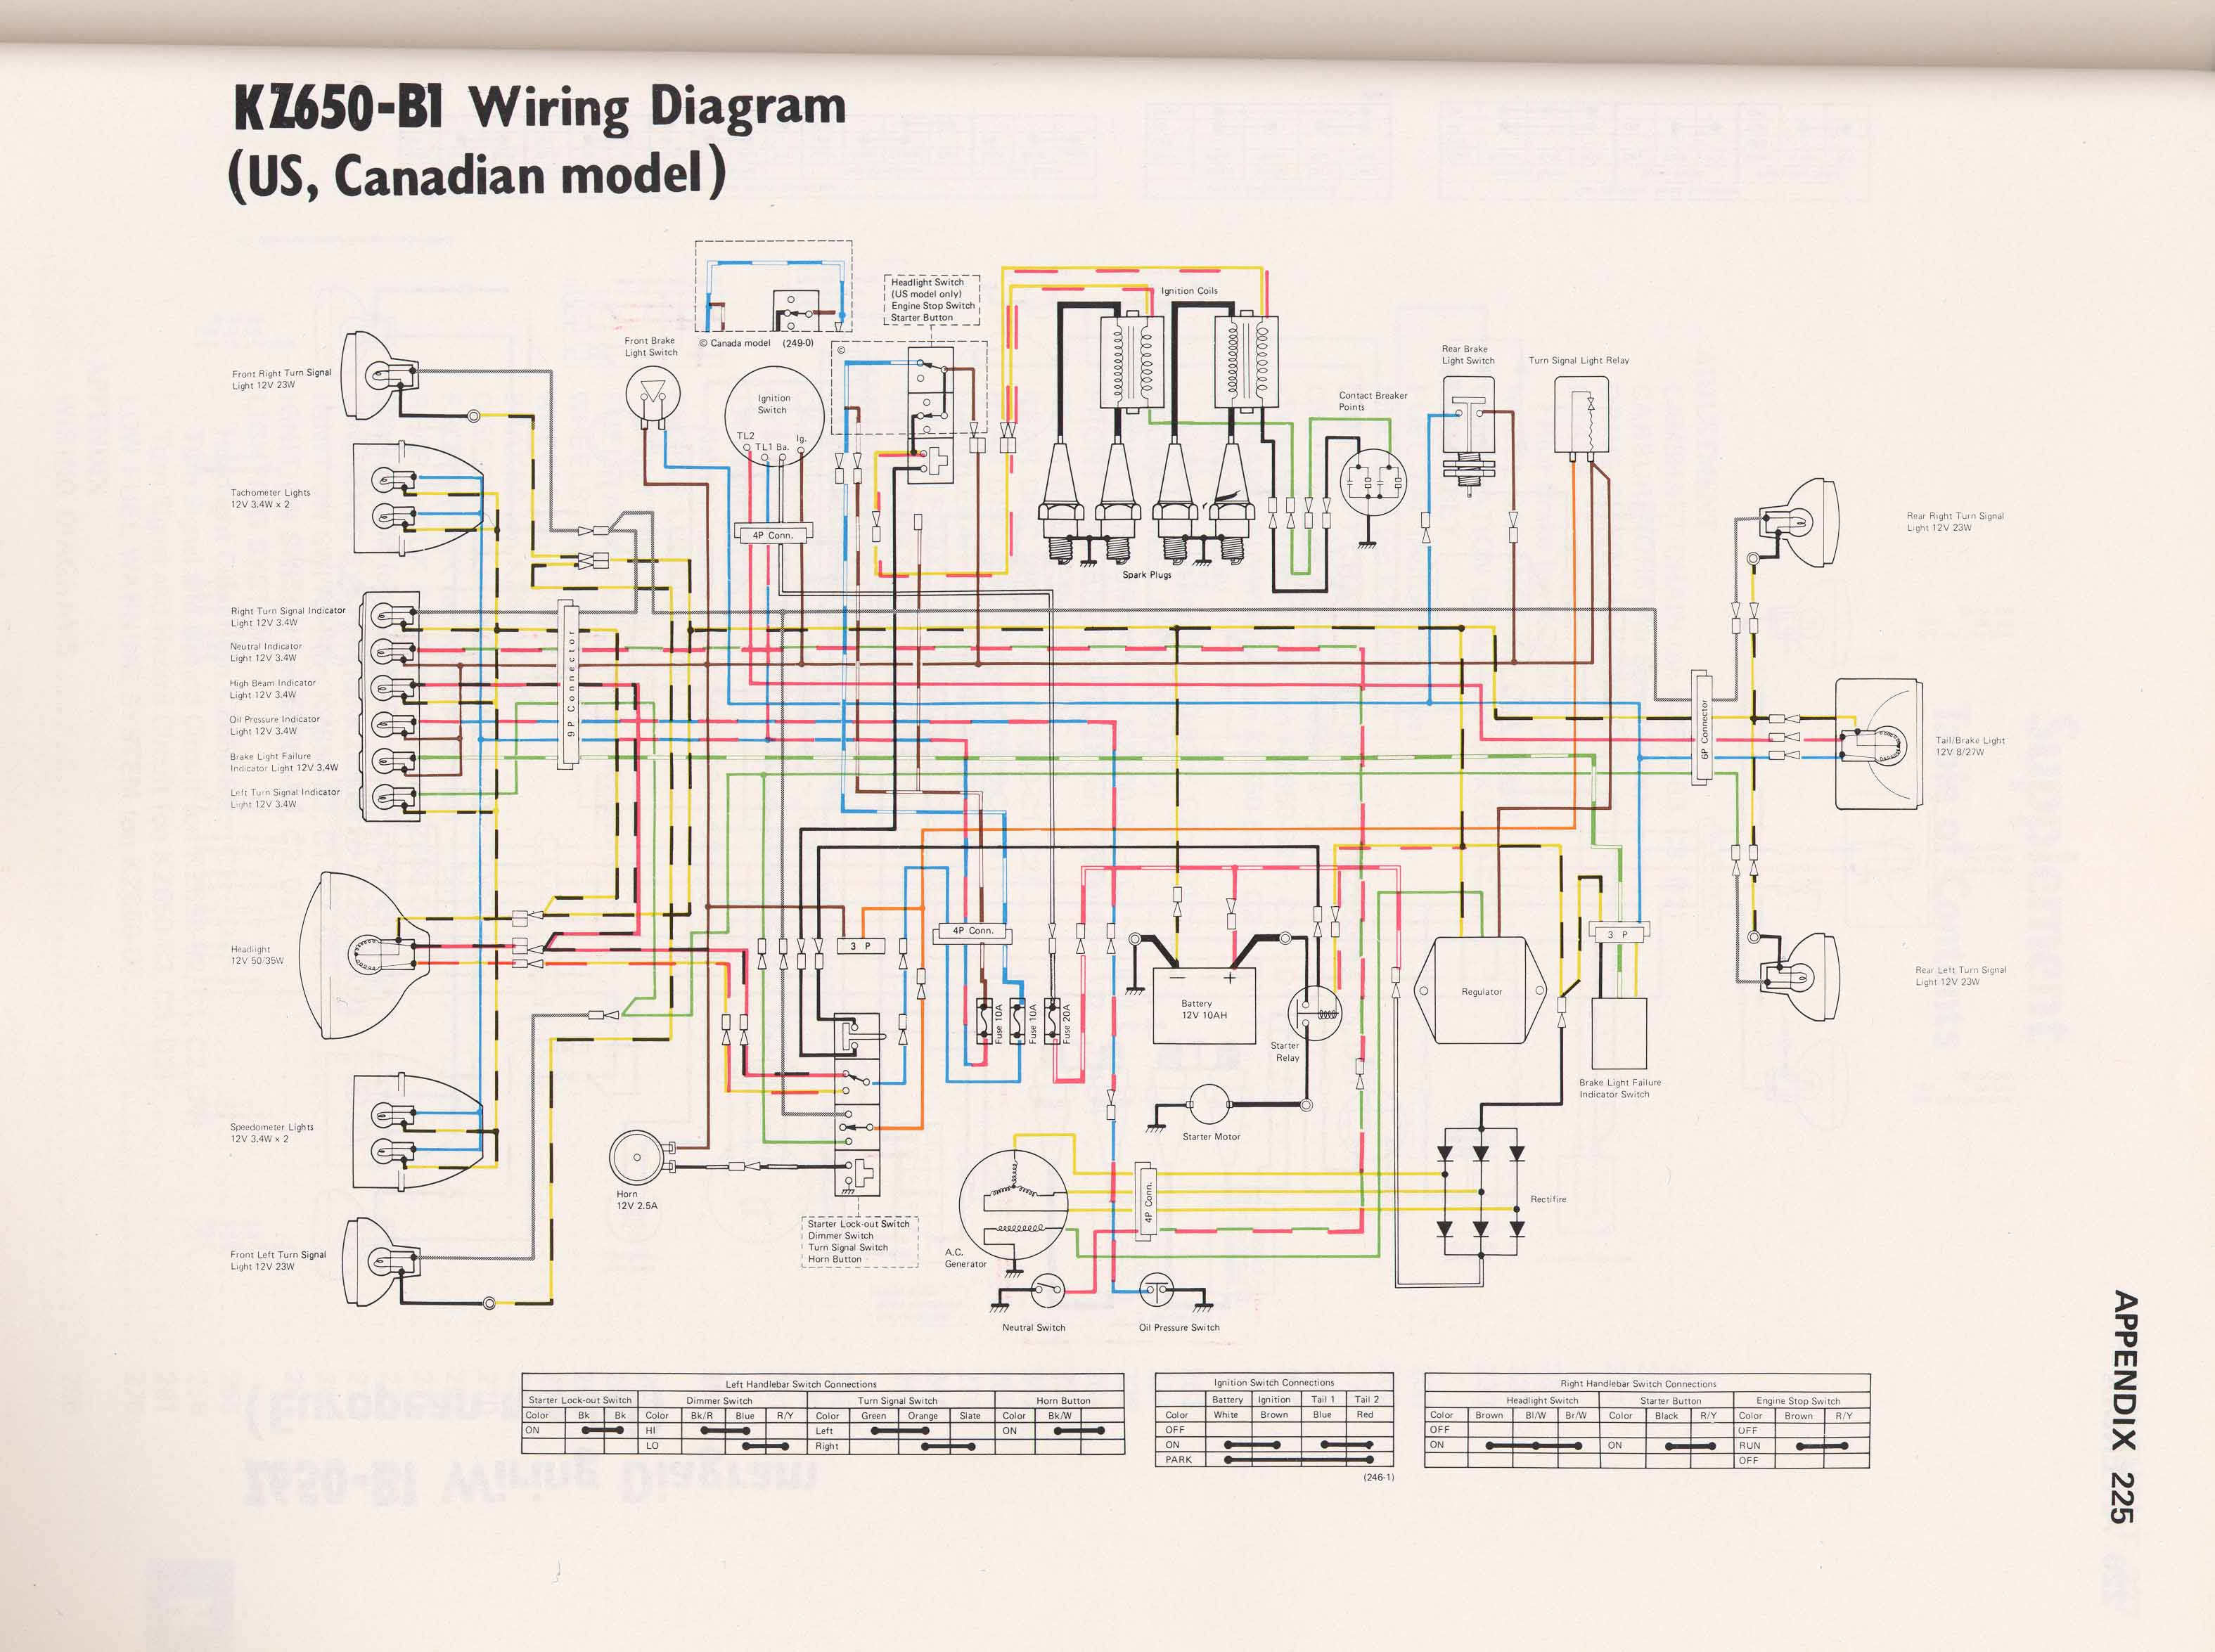 KZ650 B1 kz650 info wiring diagrams ignition wiring diagram at aneh.co